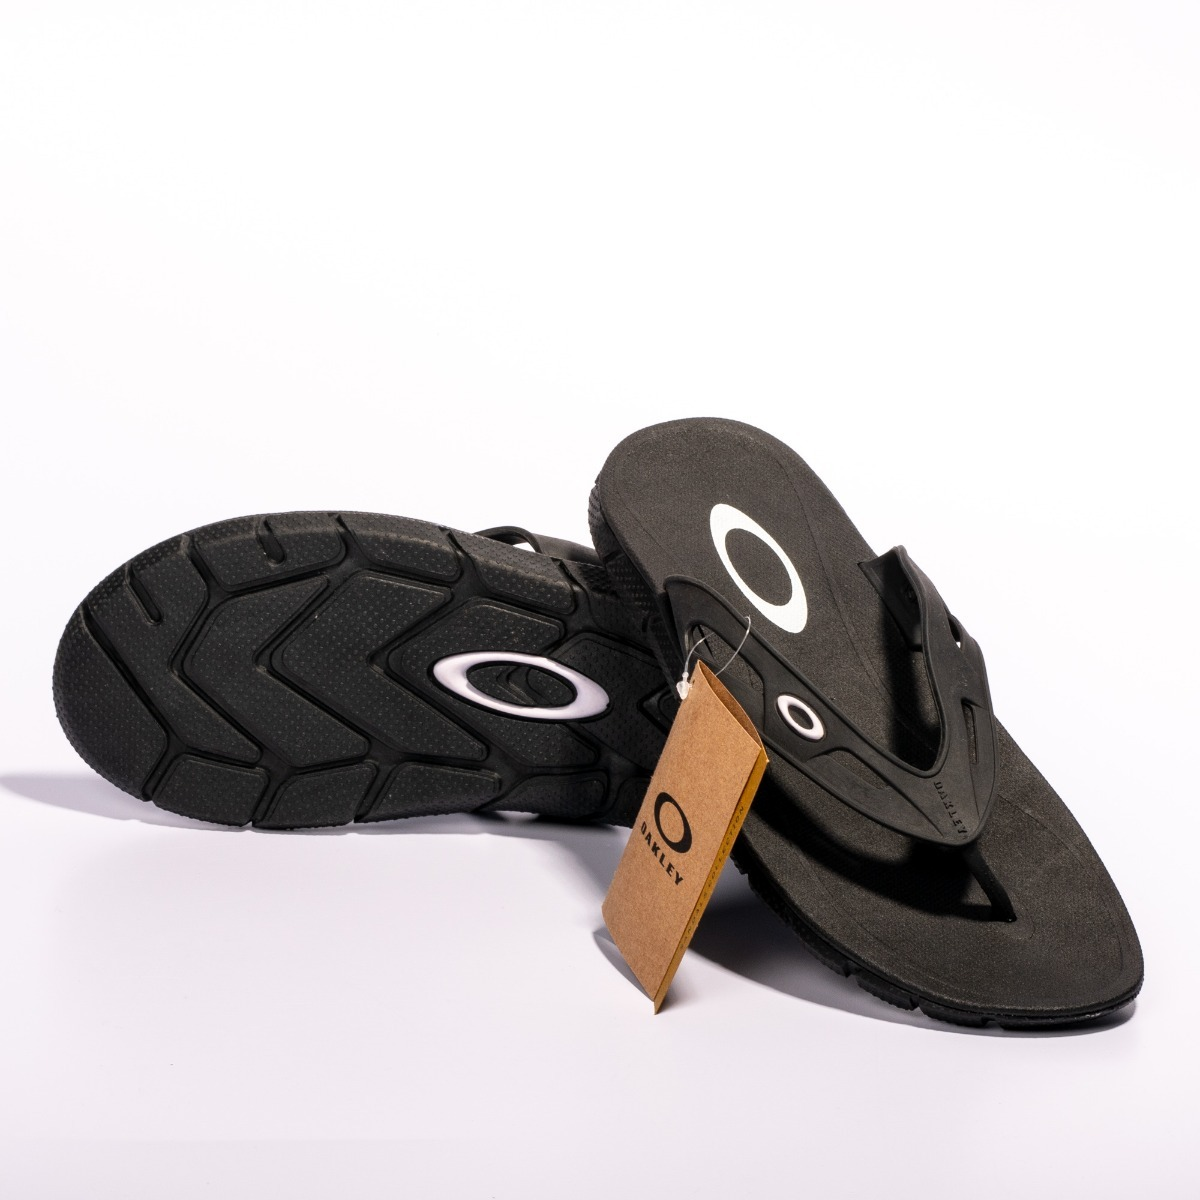 497cbeaa96f50 chinelo oakley new operative preto branco -original. Carregando zoom.